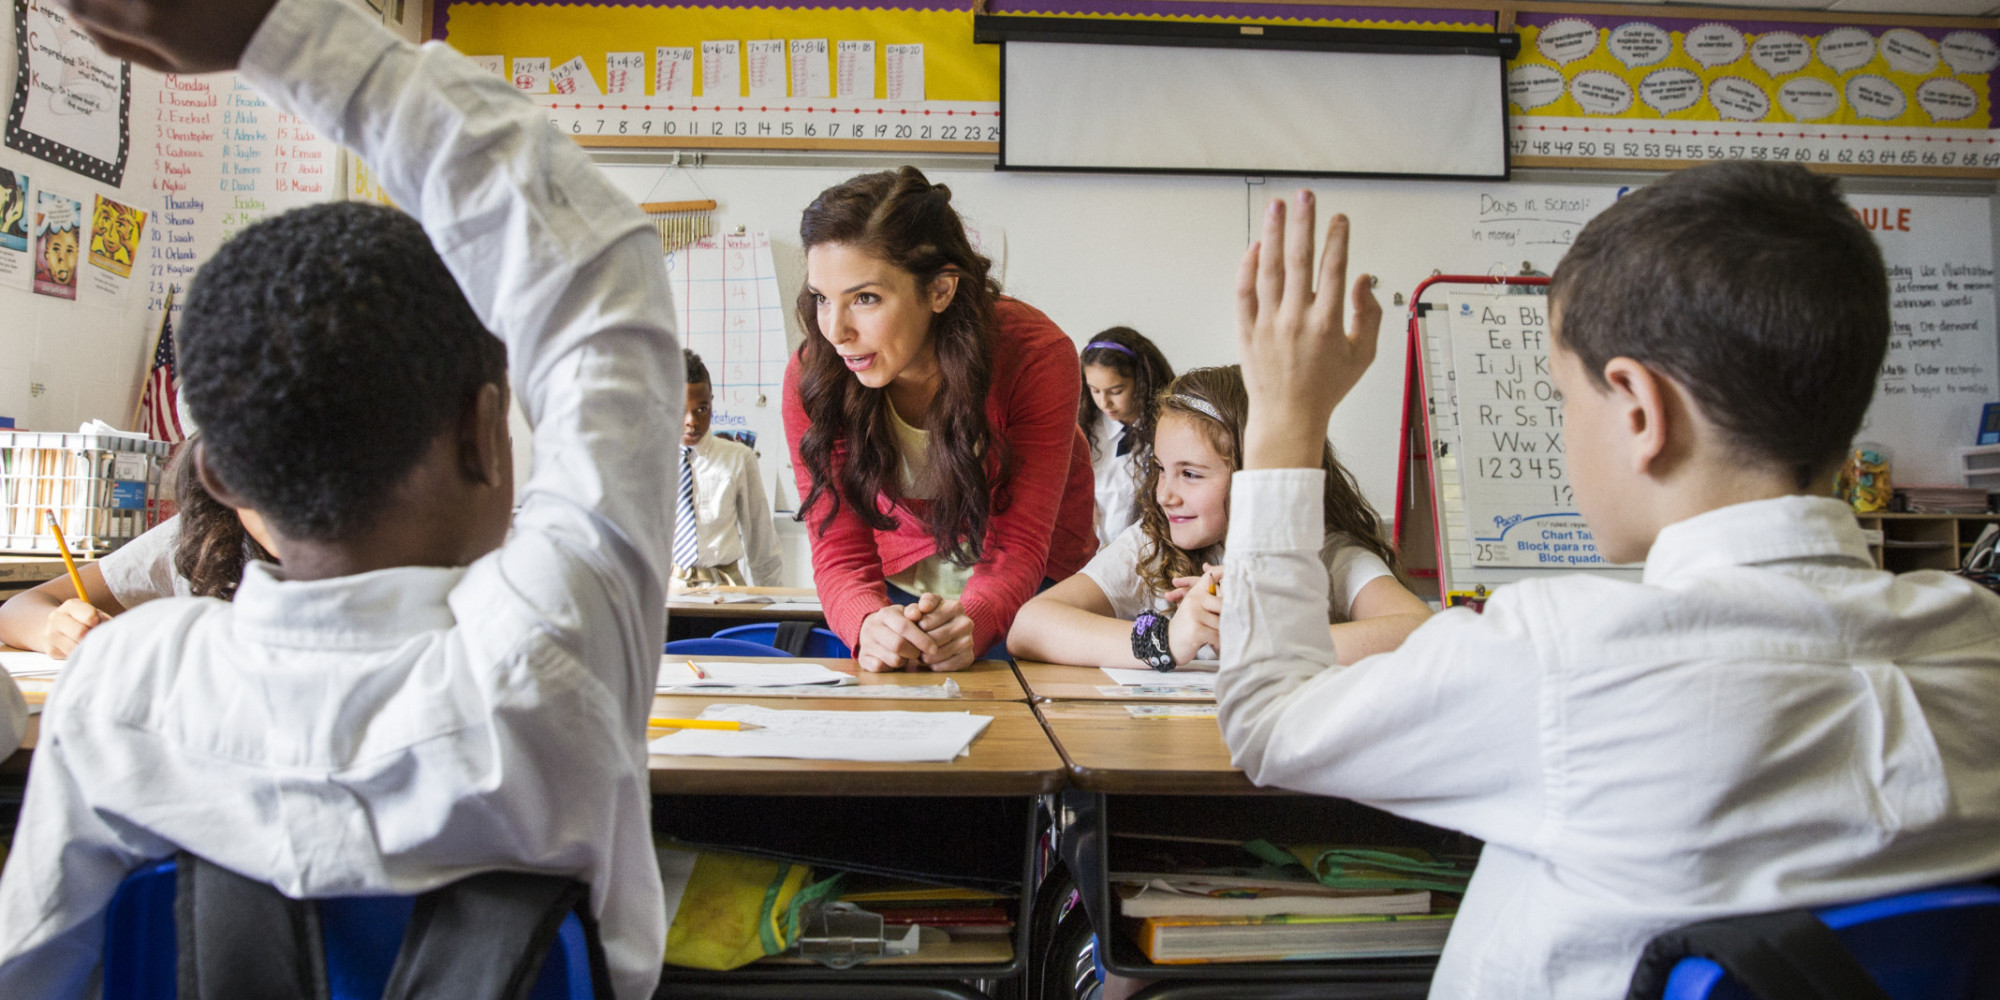 teacher conduct Teachers hold outsized influence in children's lives, so states and the profession itself have created stringent codes of ethics.